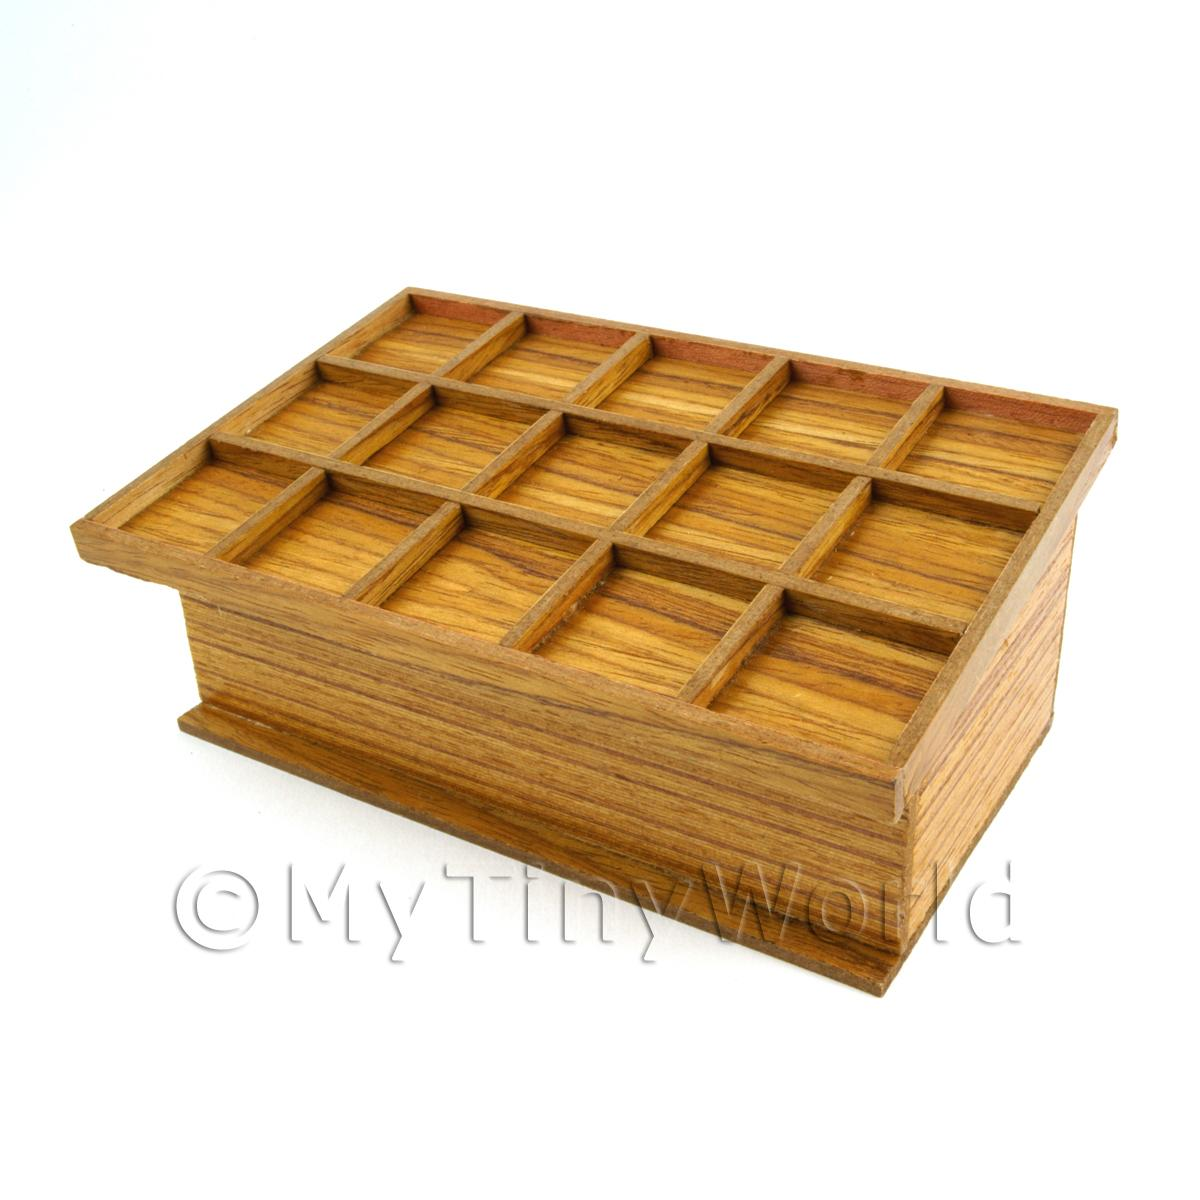 Dolls House Miniature 15 Compartment Vegetable Stand